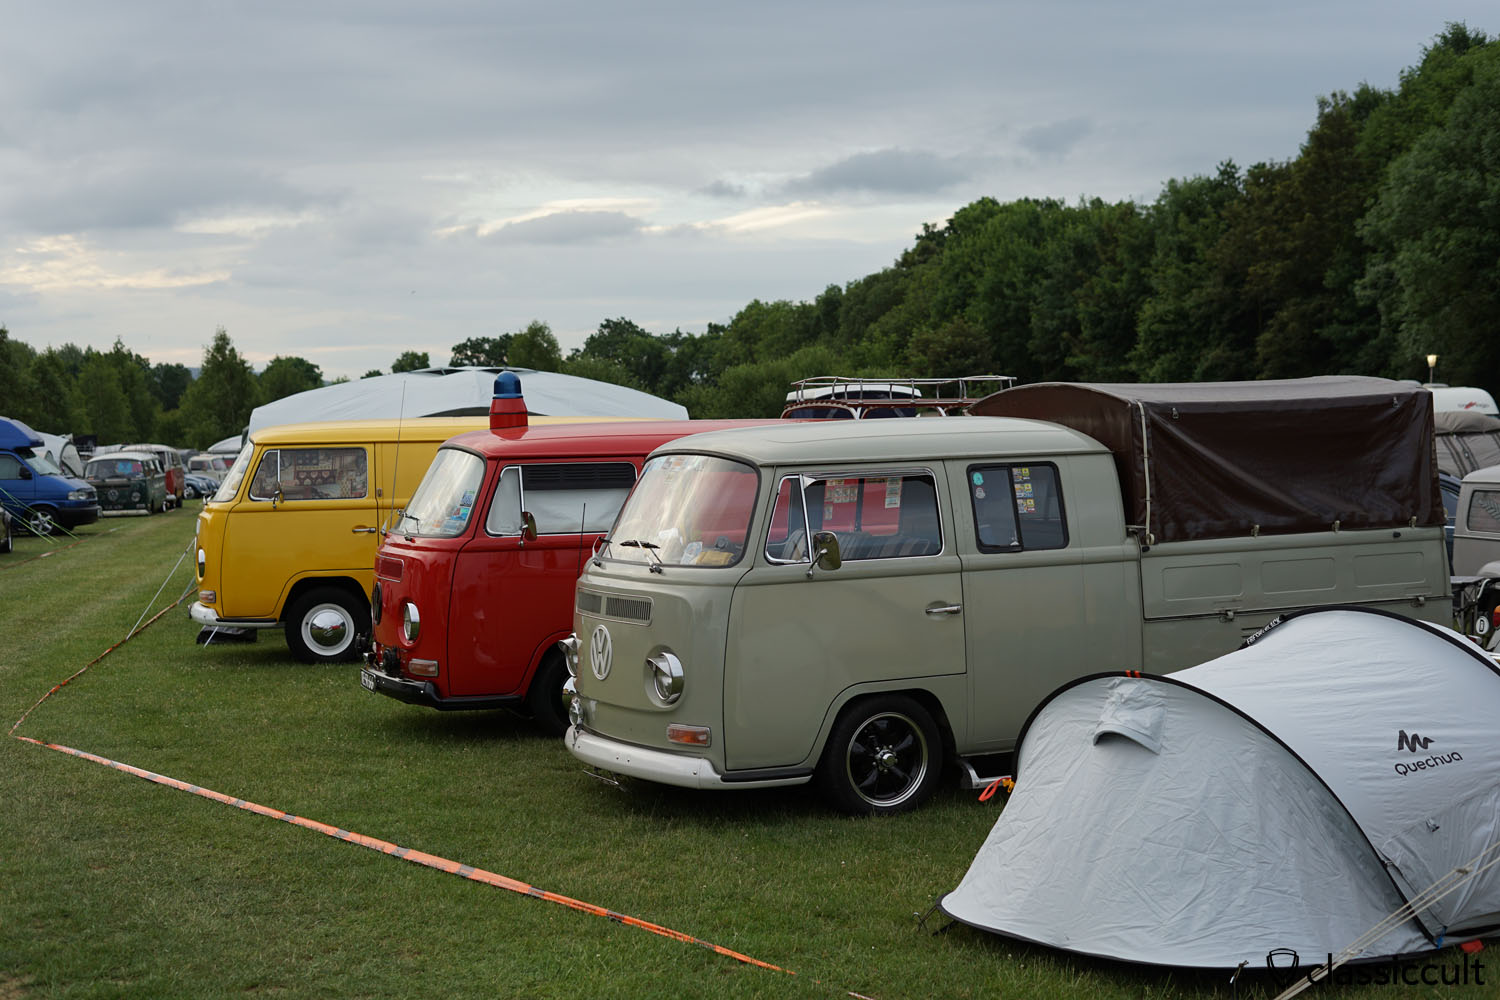 Hessisch oldendorf vw show 2017 classiccult campground hessisch oldendorf vw meeting 2017 publicscrutiny Image collections